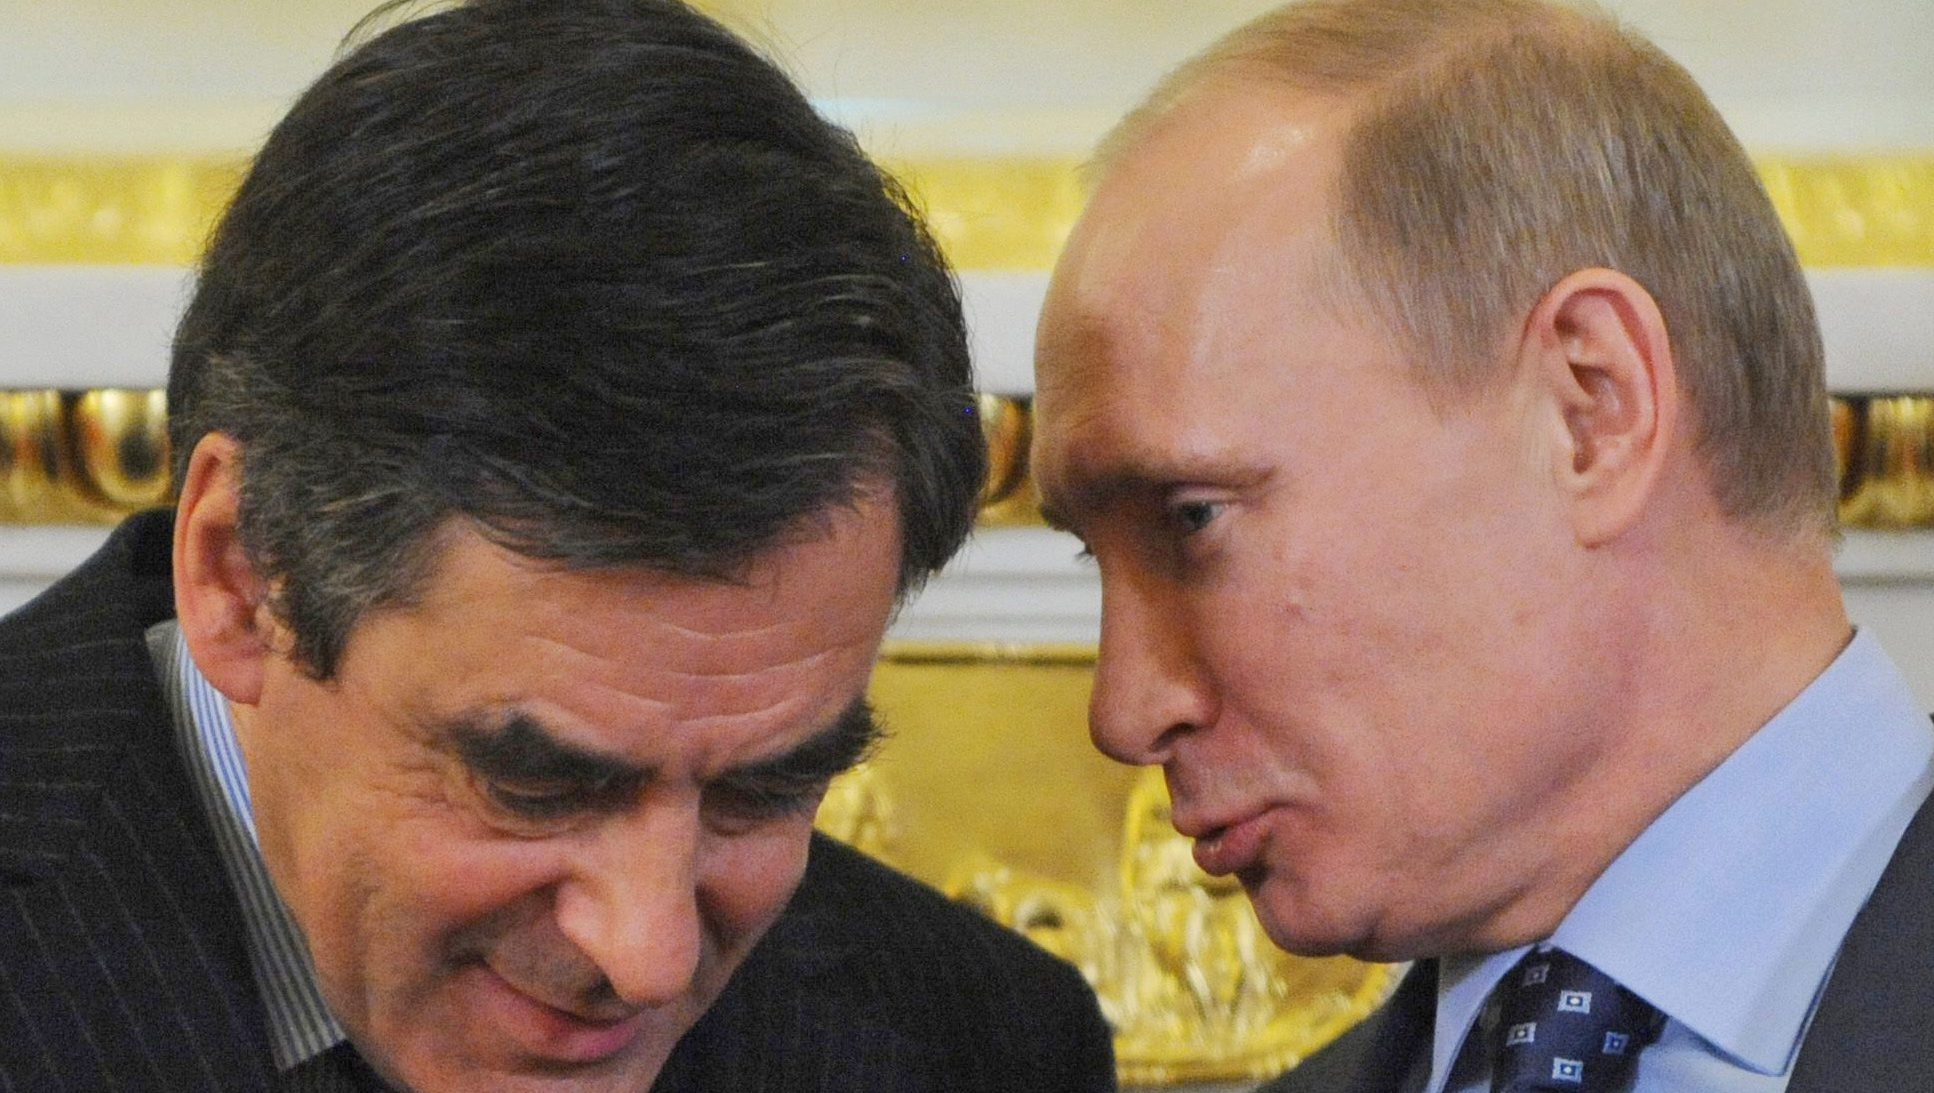 """Russian Prime Minister Vladimir Putin, right, and his  French counterpart Francois Fillon talk at a signing ceremony in Moscow, Friday, Nov. 18, 2011. Fillon who was meeting with Putin in Moscow on Friday said the international community must increase pressure on the Syrian regime """"so that Assad could not longer destabilize the situation in the region."""" (AP Photo/Natalia Kolesnikova, Pool)"""